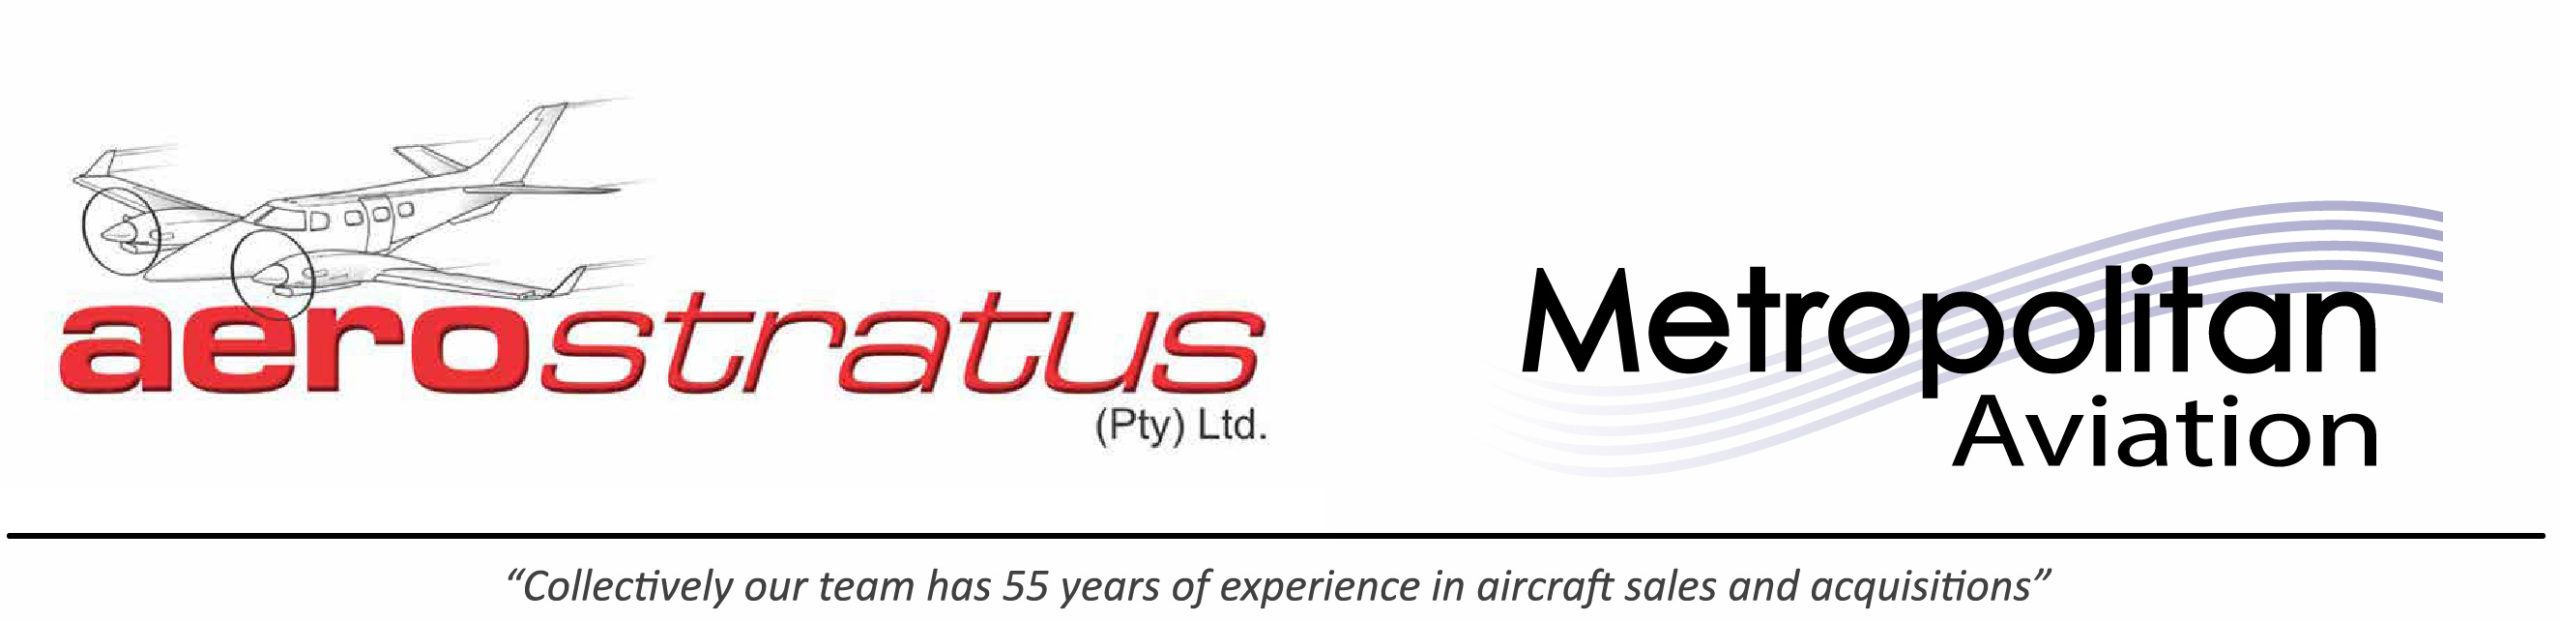 Aerostratus and Metropolitan Aviation, collectively have 55 years experience in aircraft sales and acquisitions